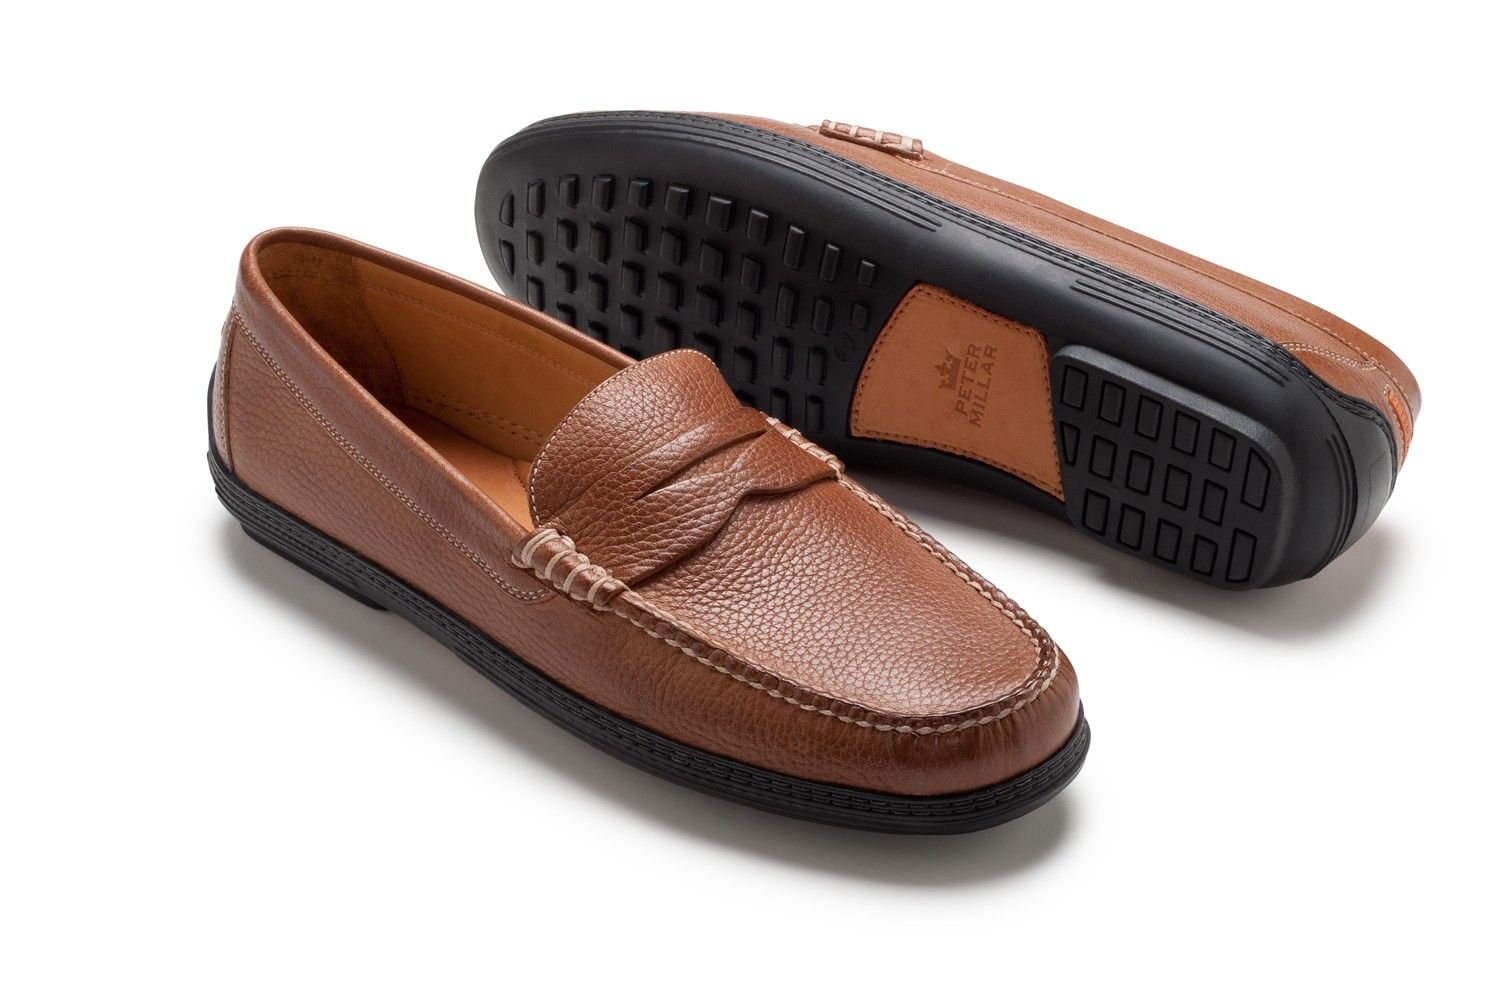 a7aedfd401b Peter millar denny penny loafer shoes loafers men penny loafers jpg  1500x998 Peter millar penny loafer